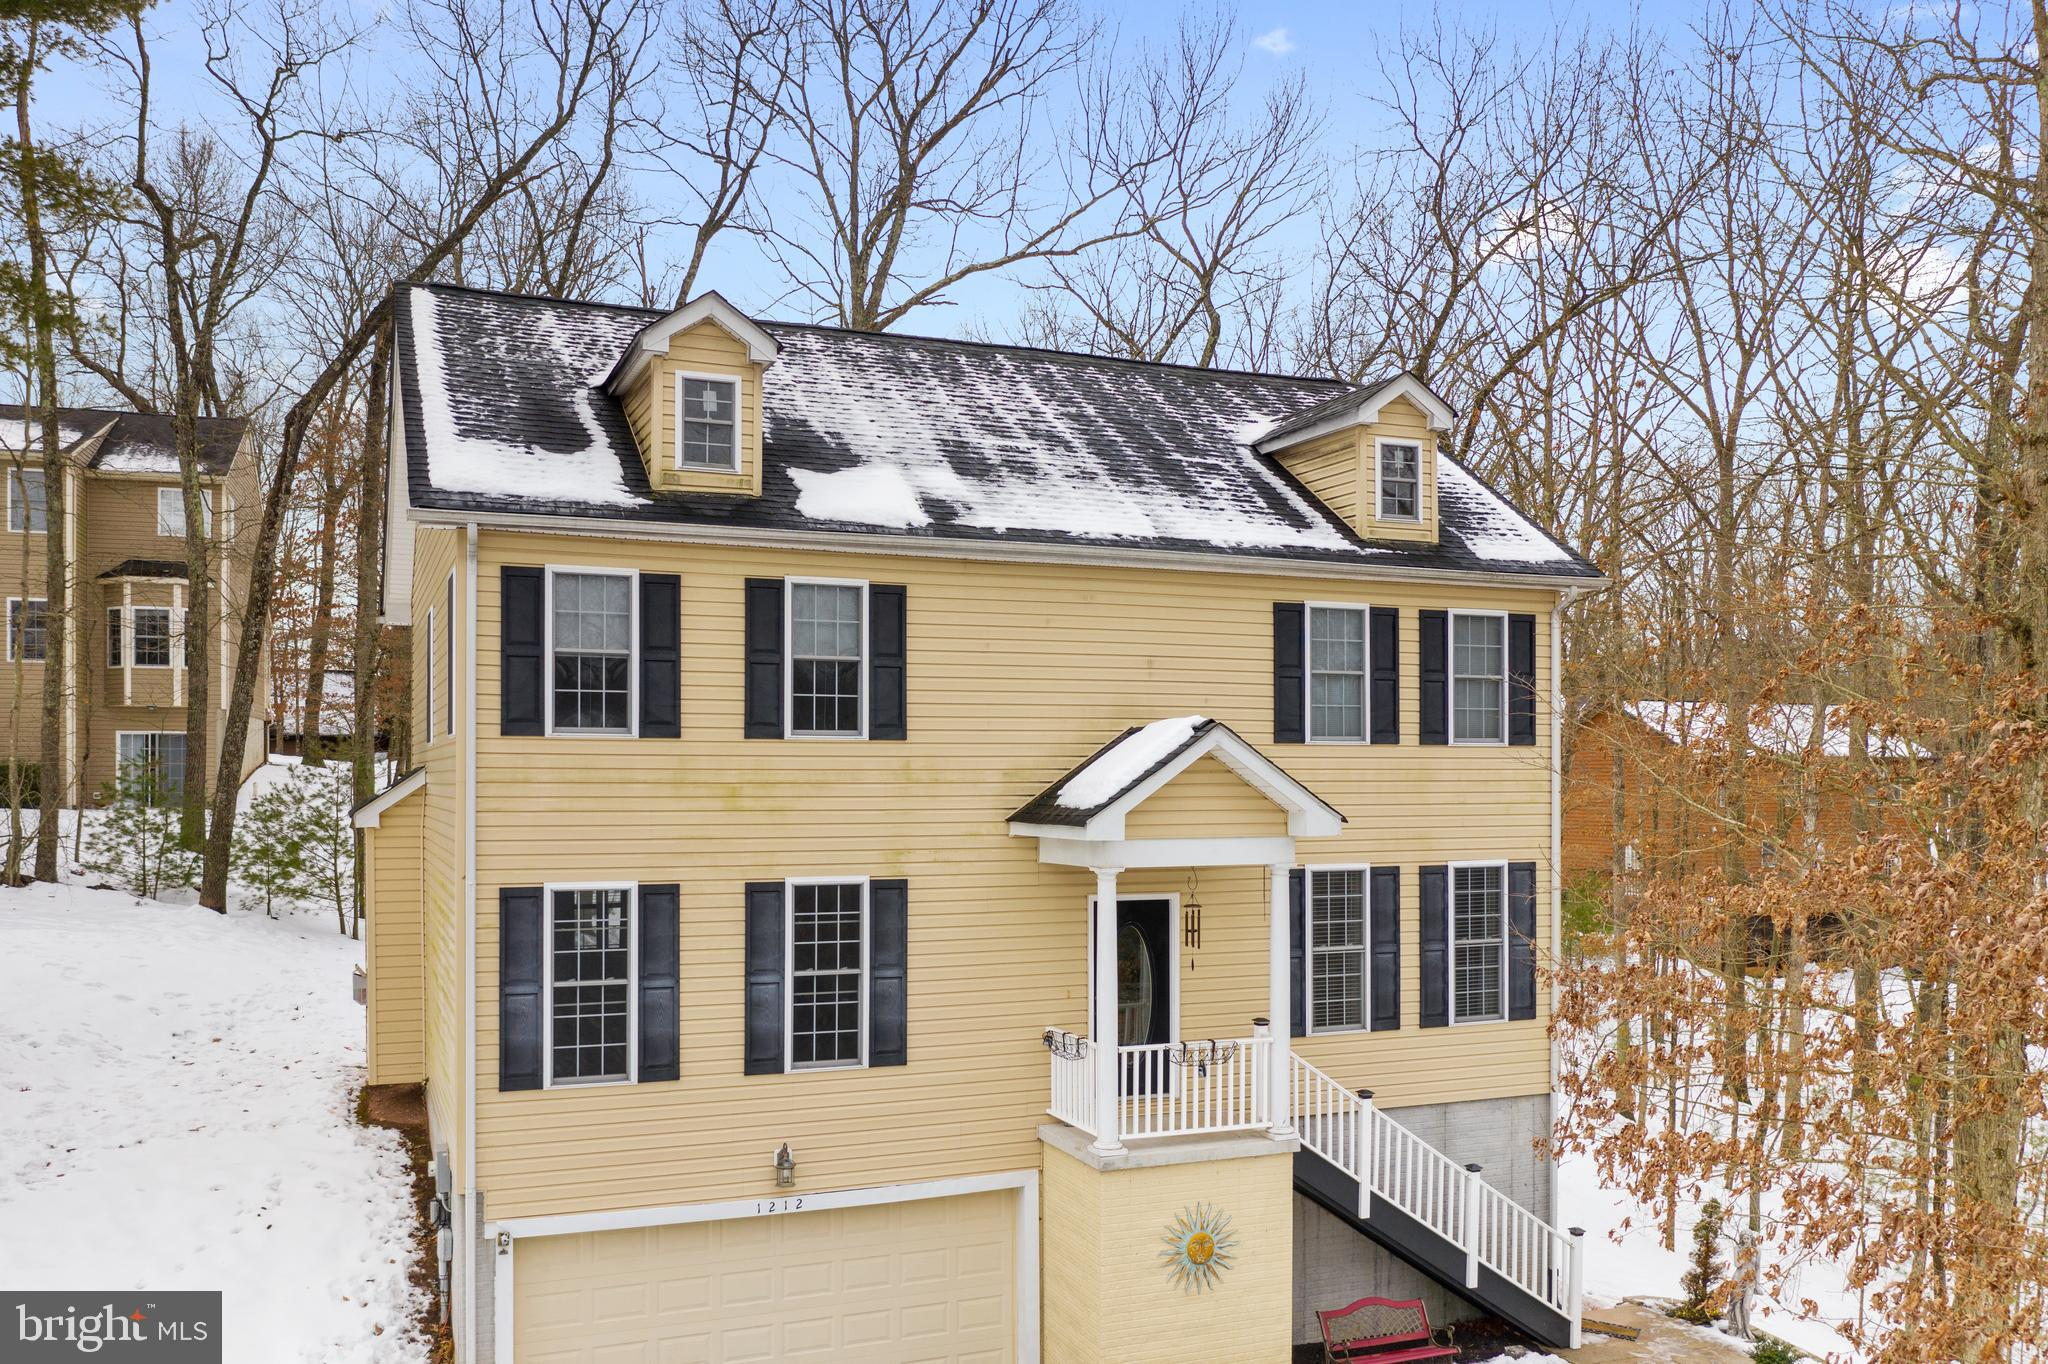 Beautiful colonial in Lake Holiday just minutes from the main beach and clubhouse! You'll love lake